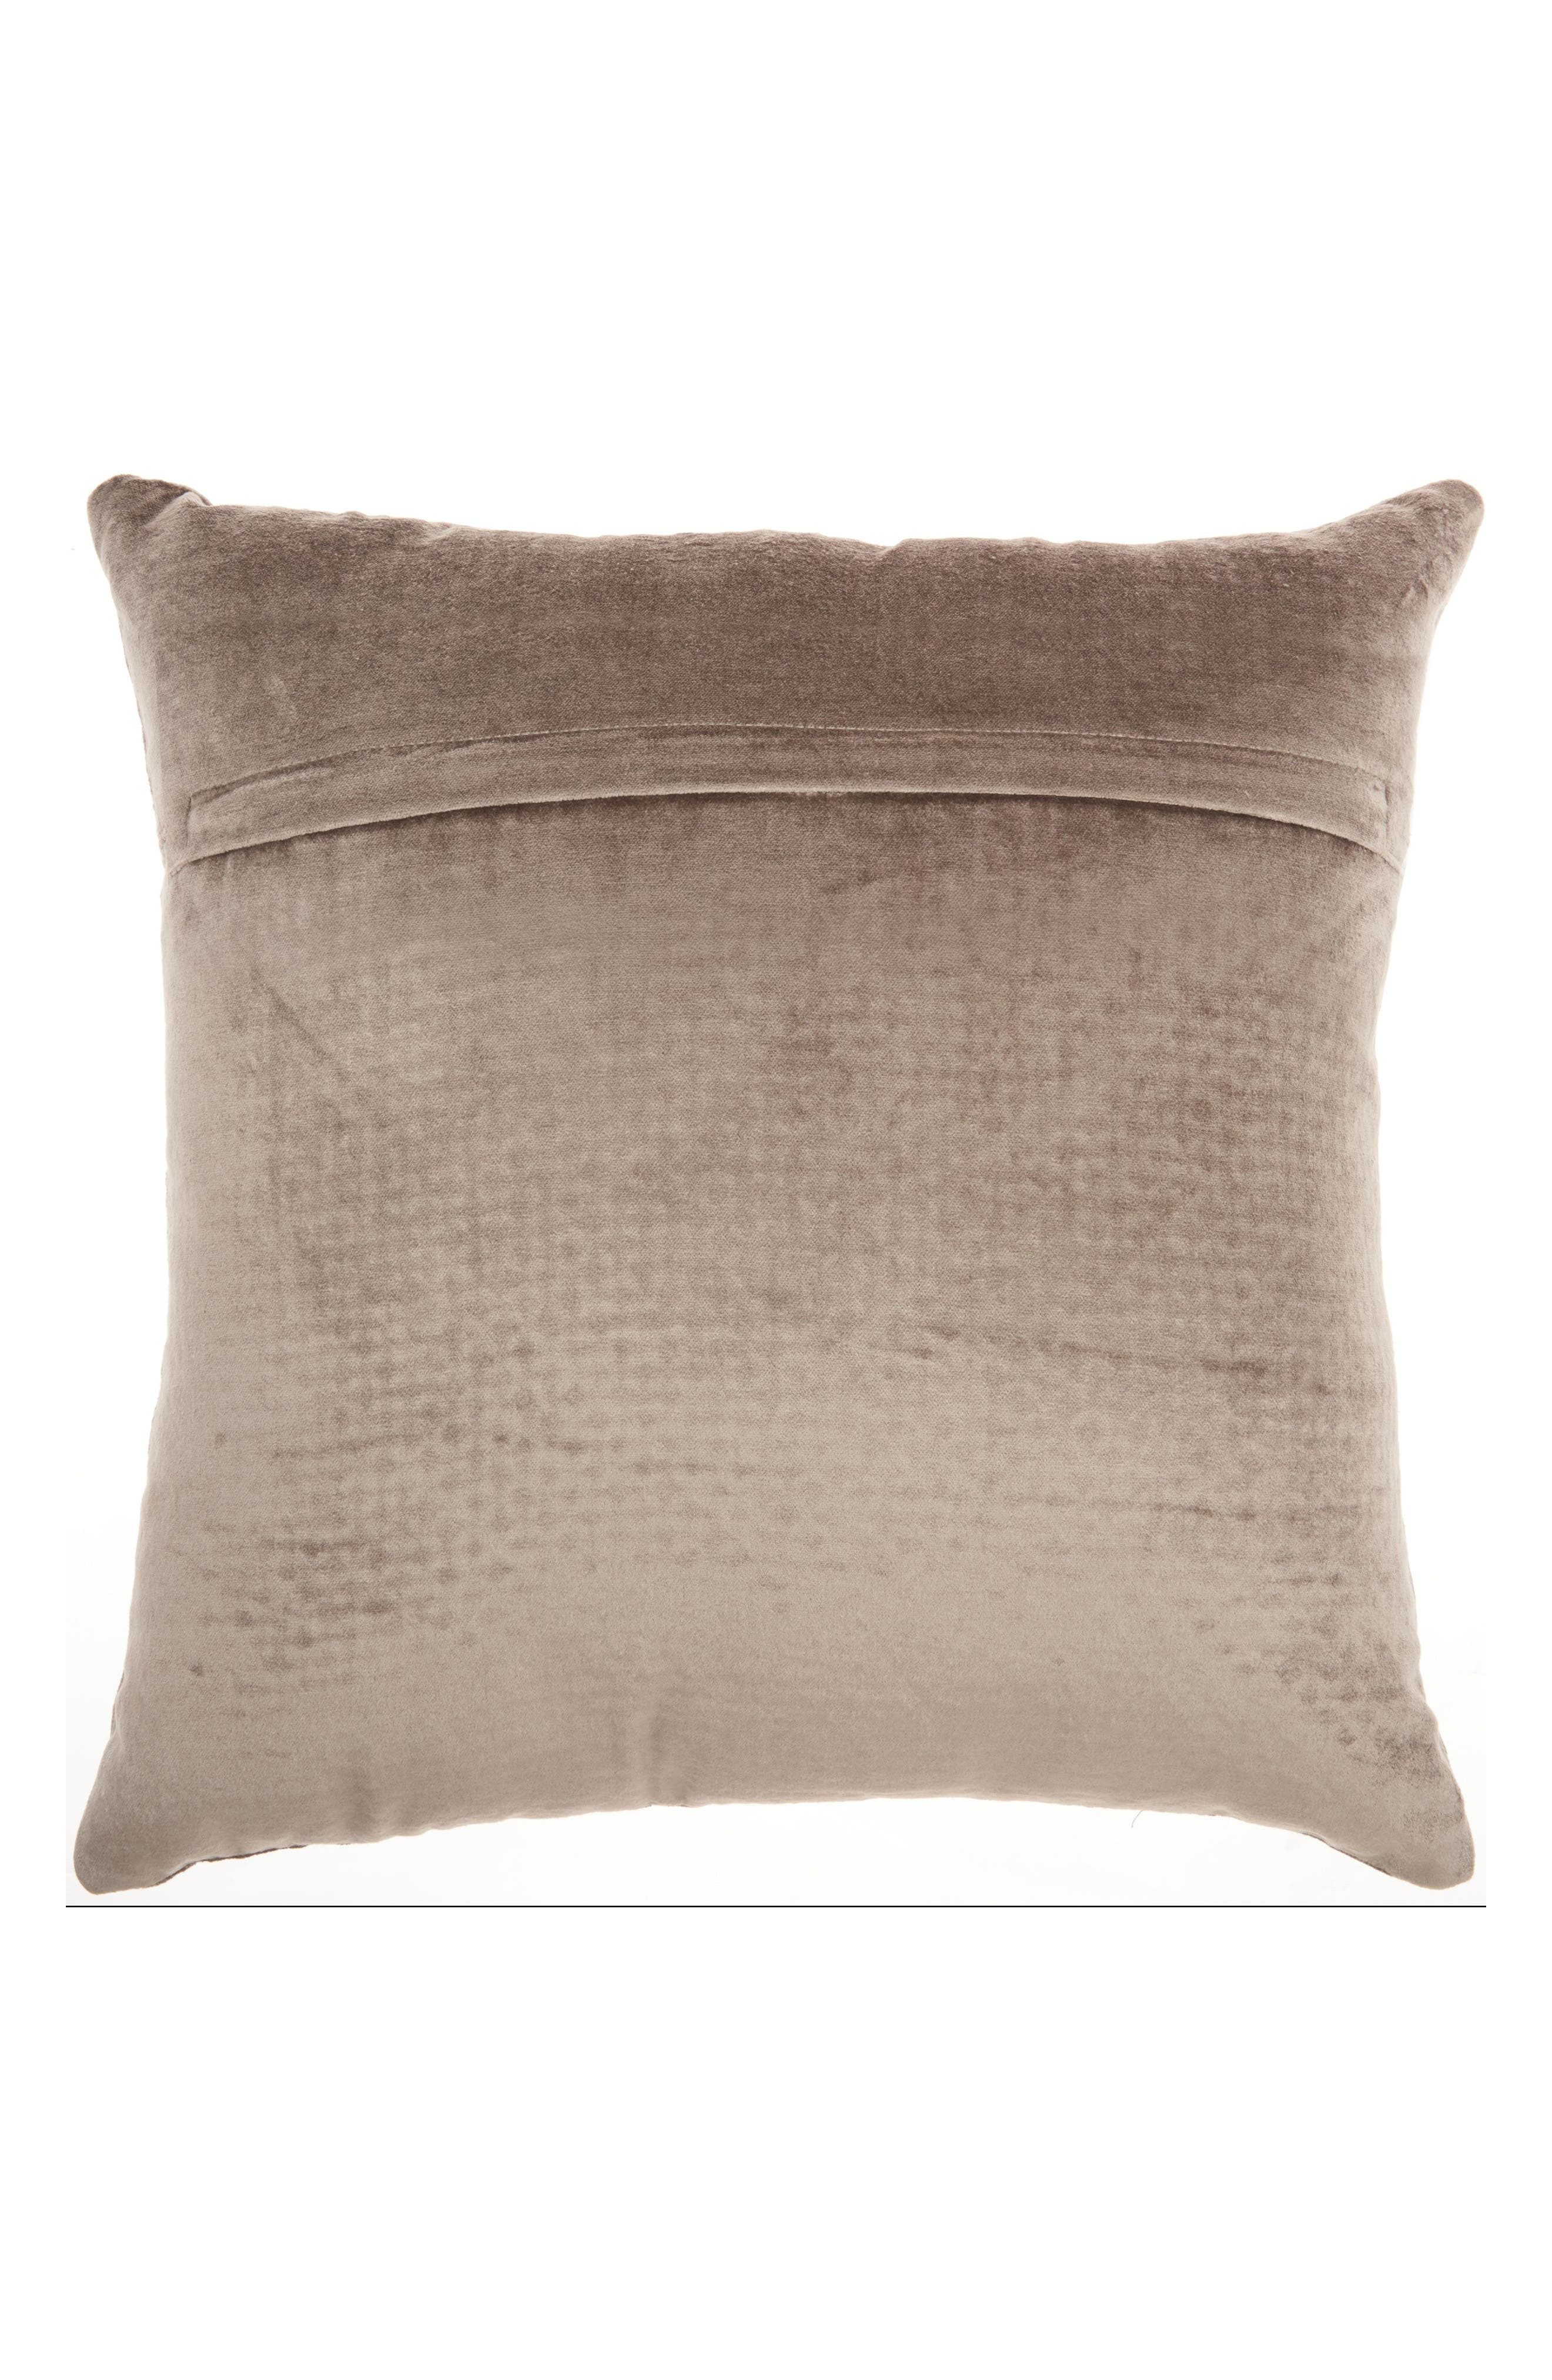 Cobble Jewel Accent Pillow,                             Alternate thumbnail 2, color,                             Taupe